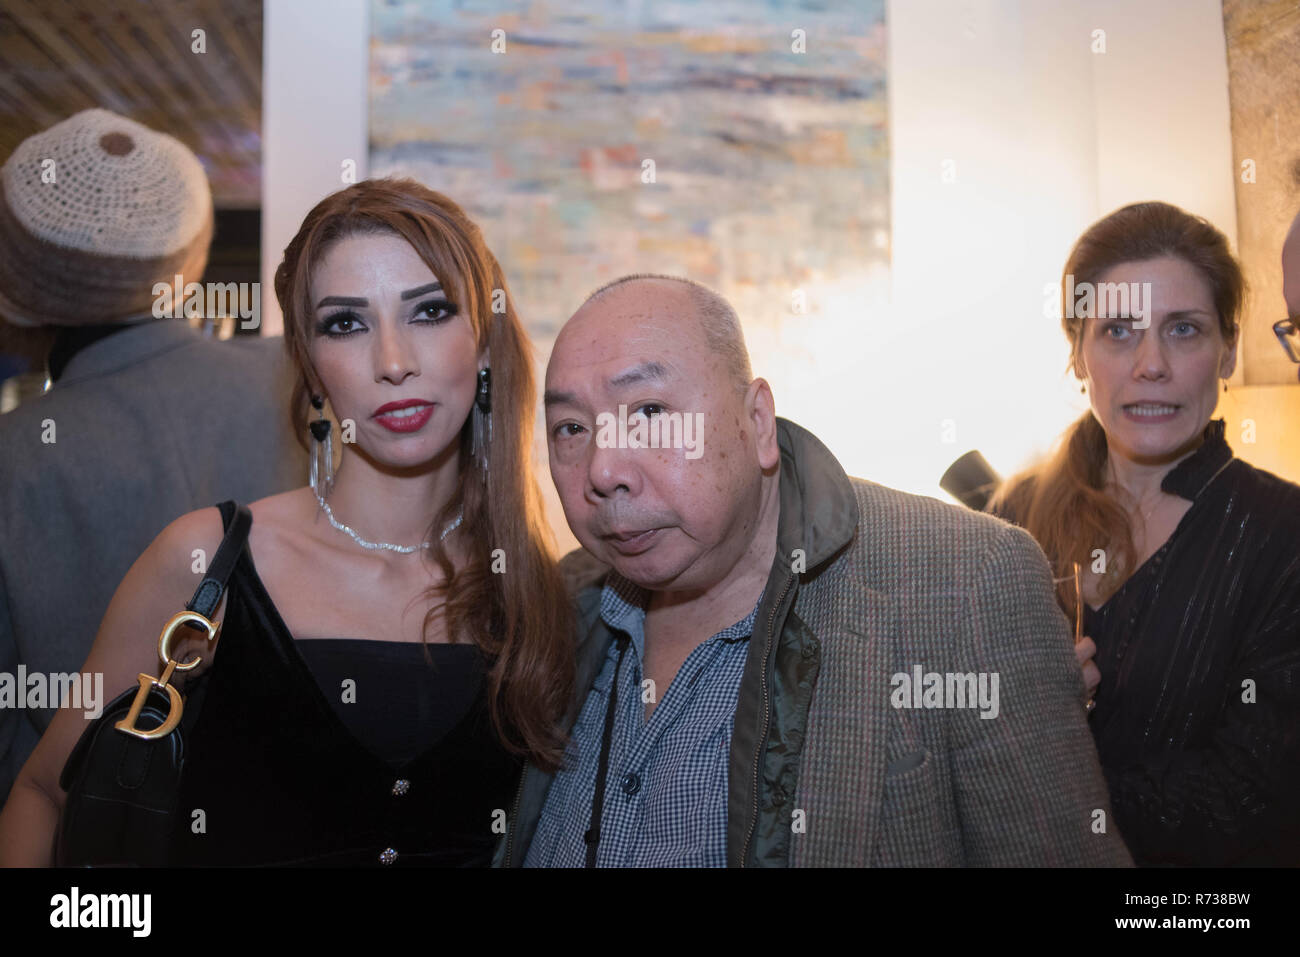 Showcase Thierry Cojan at the Place Art Parfum in Paris France Stock Photo